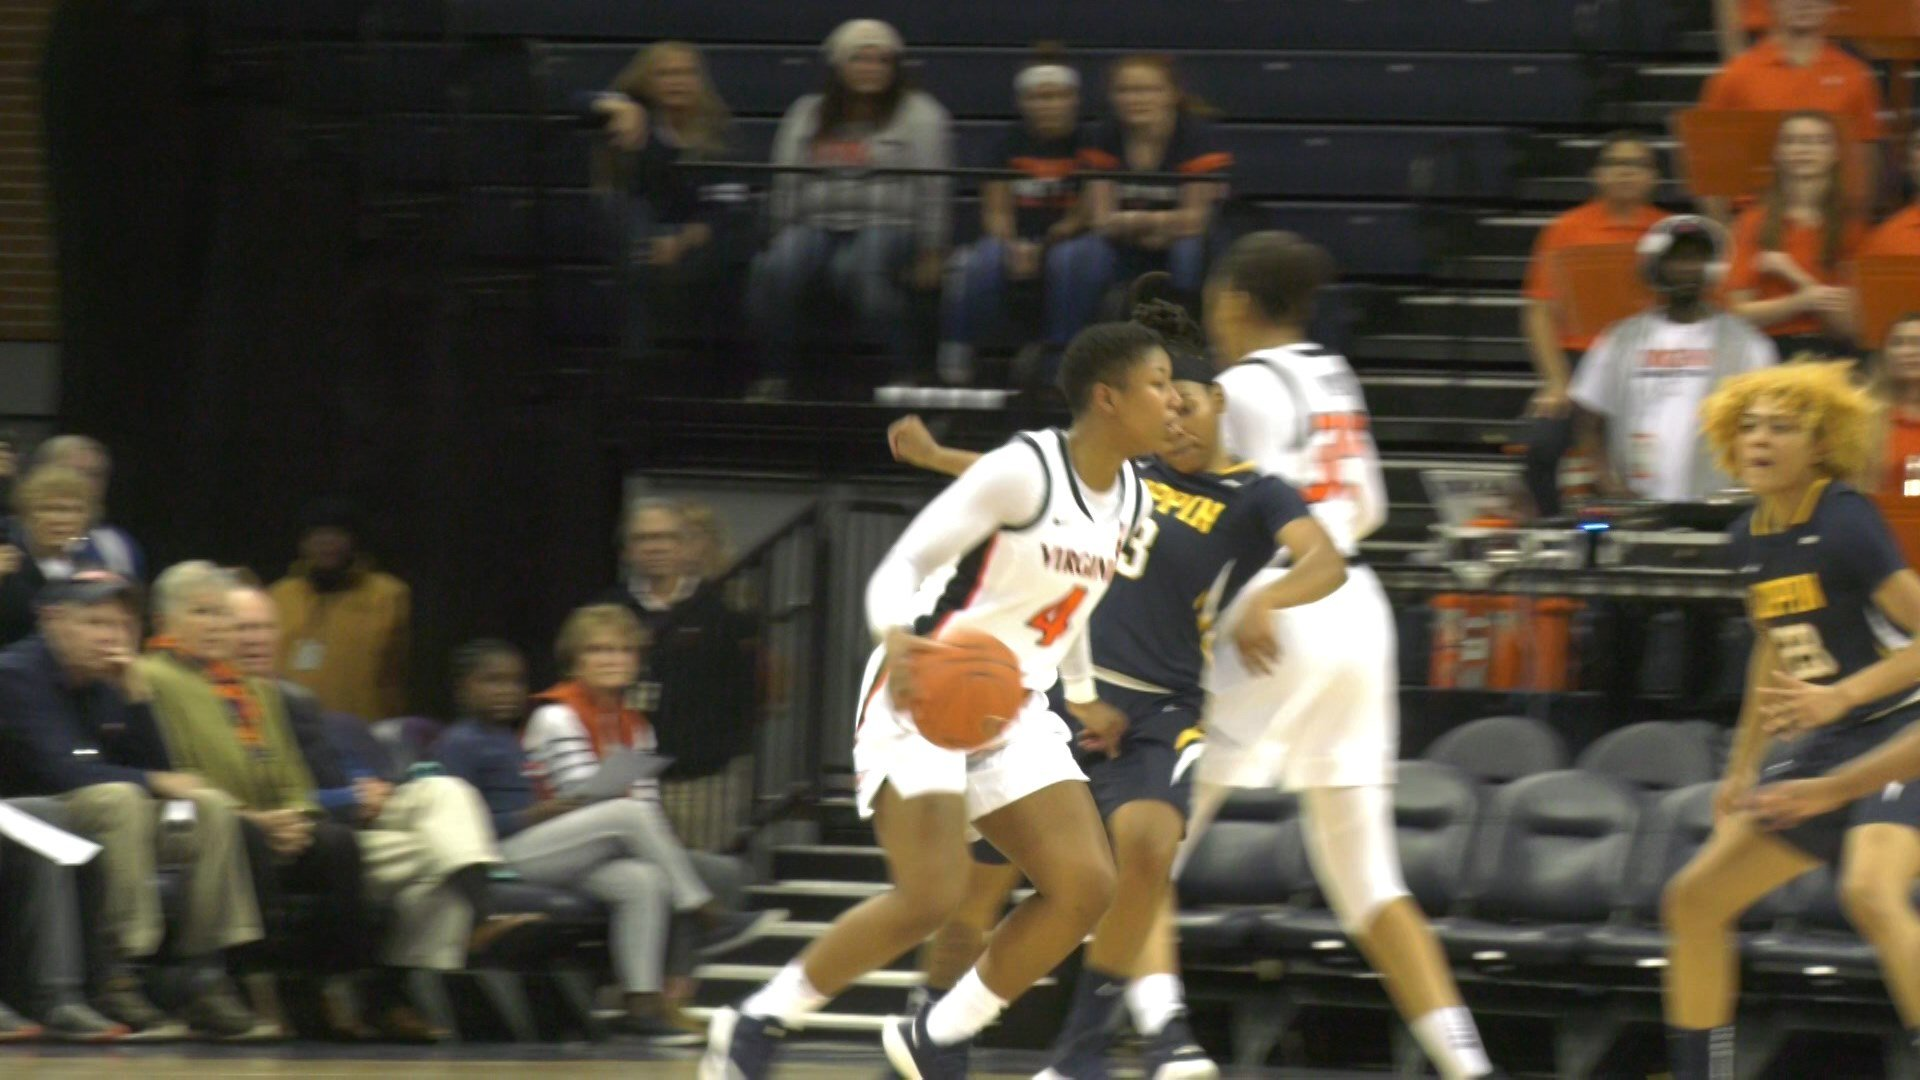 UVA defeats Coppin State at home.